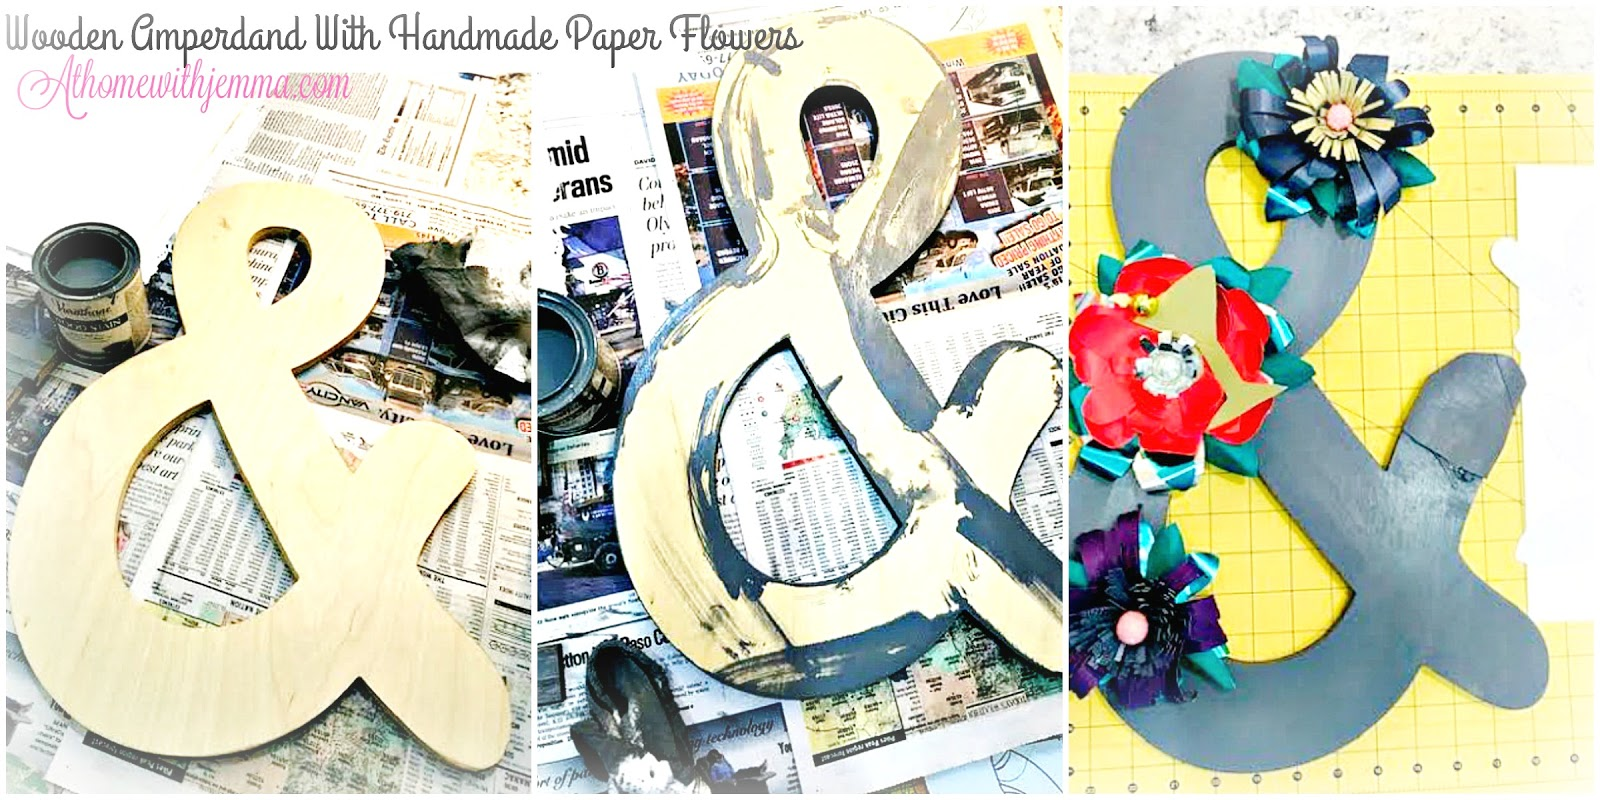 National Craft Month Wooden Ampersand With Handmade Paper Flowers At Home With Jemma